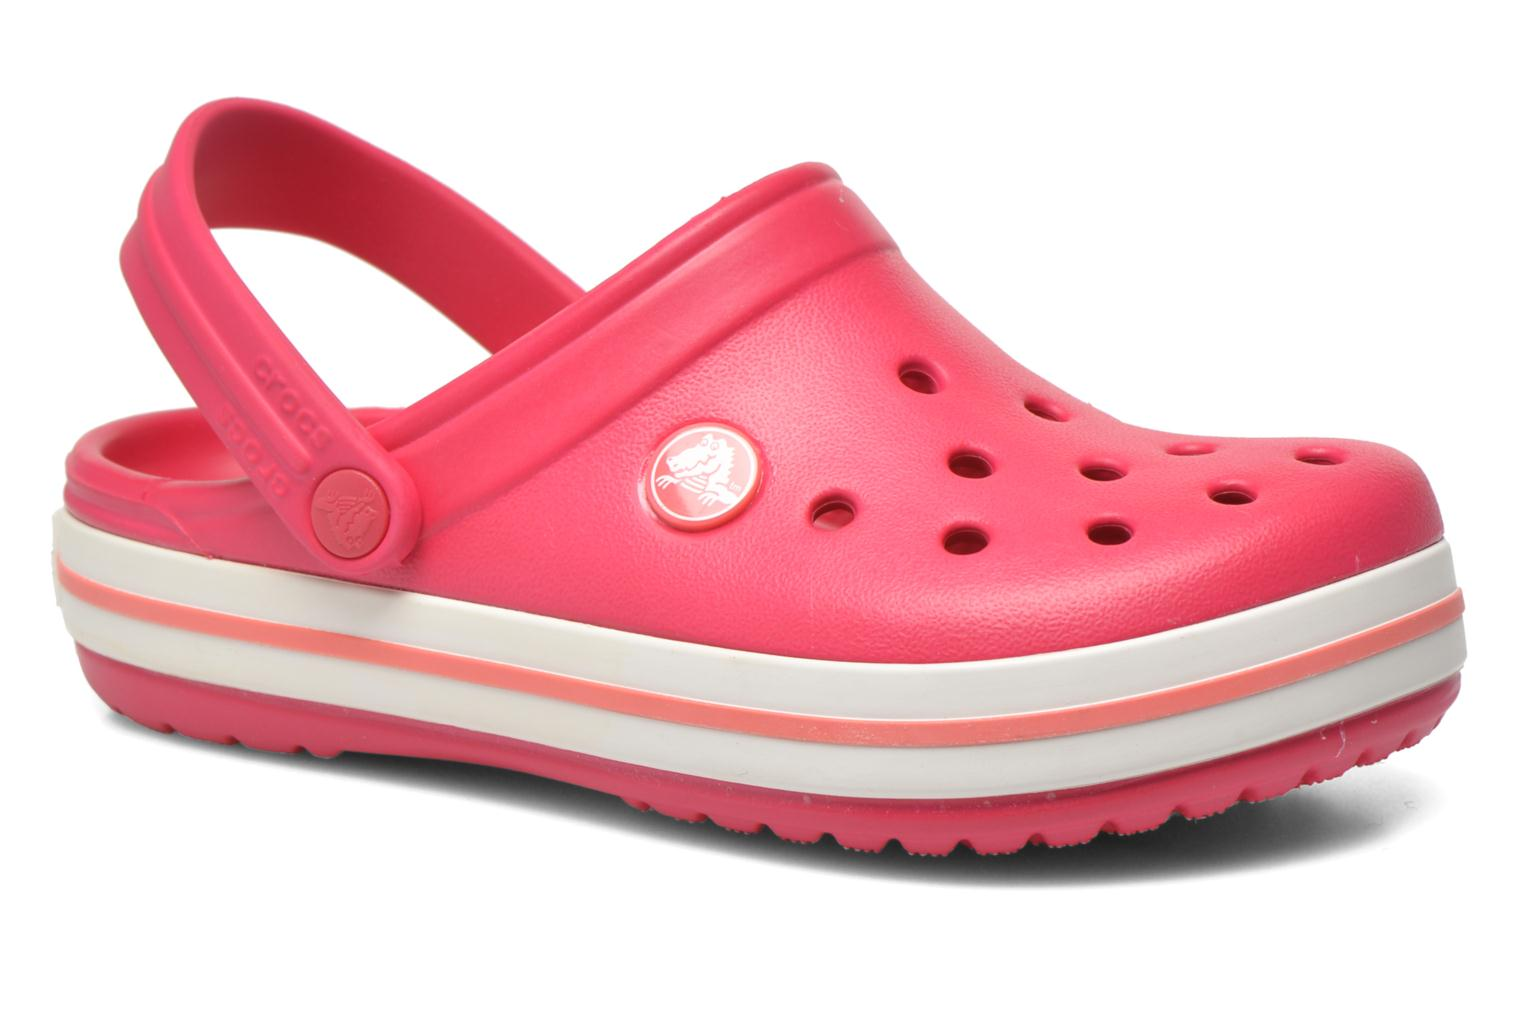 Crocsband Kids Raspberry/White